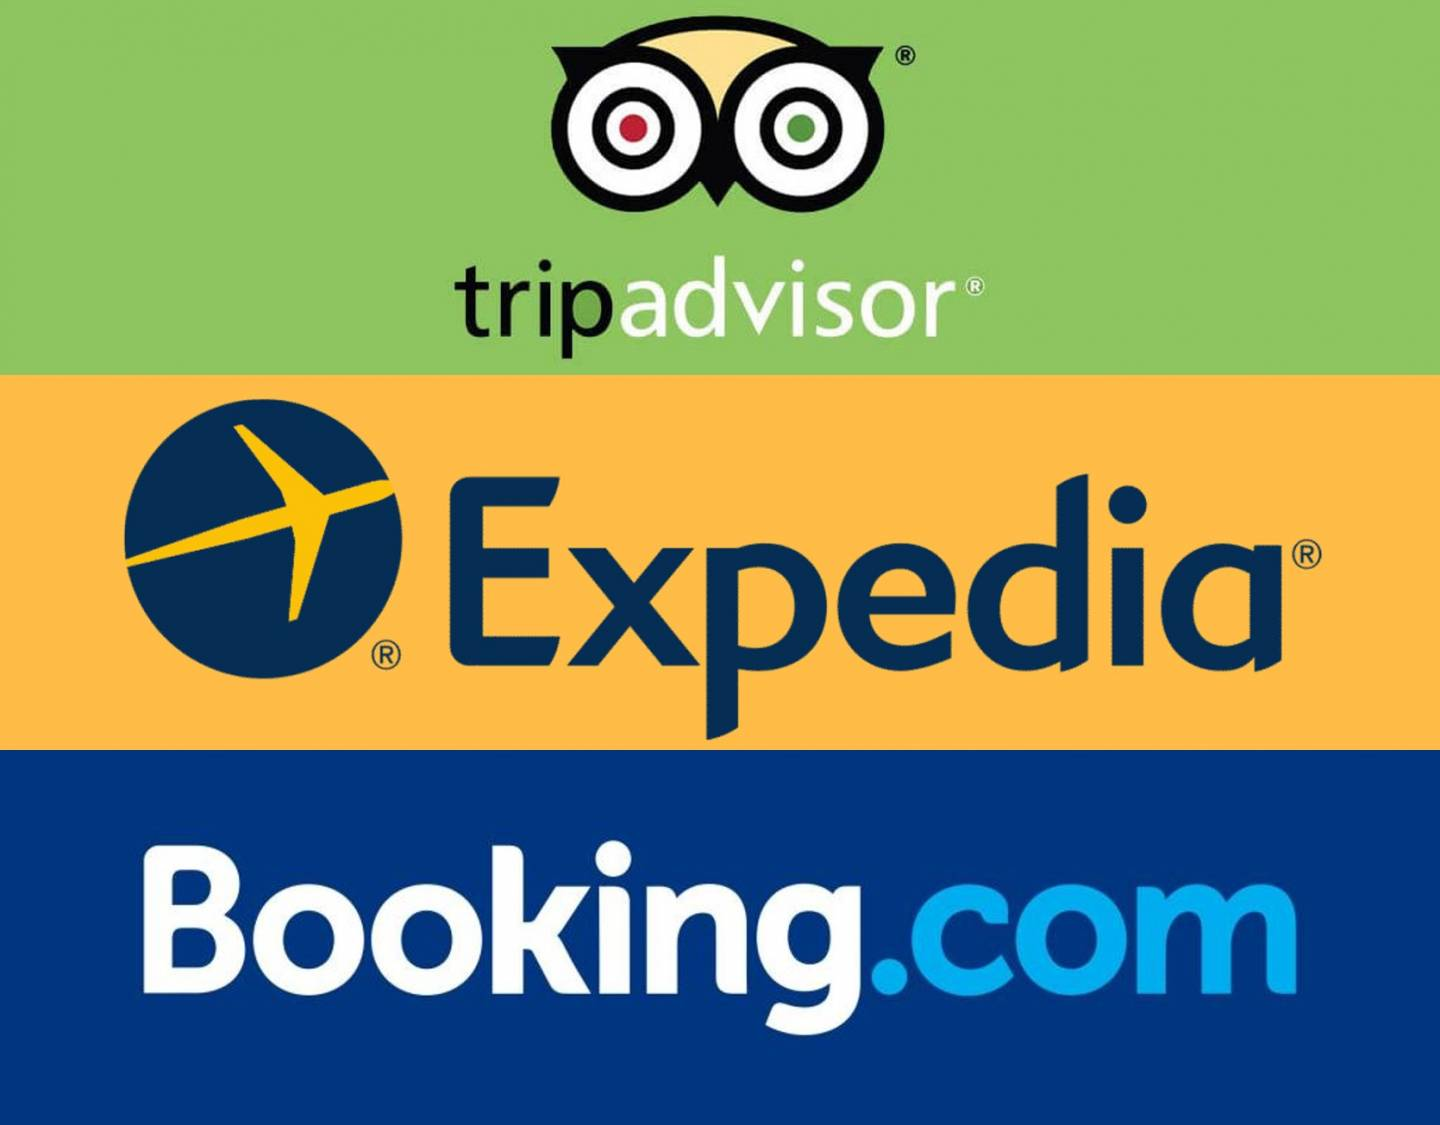 Trip advisor, Expedia and Booking.com Logos